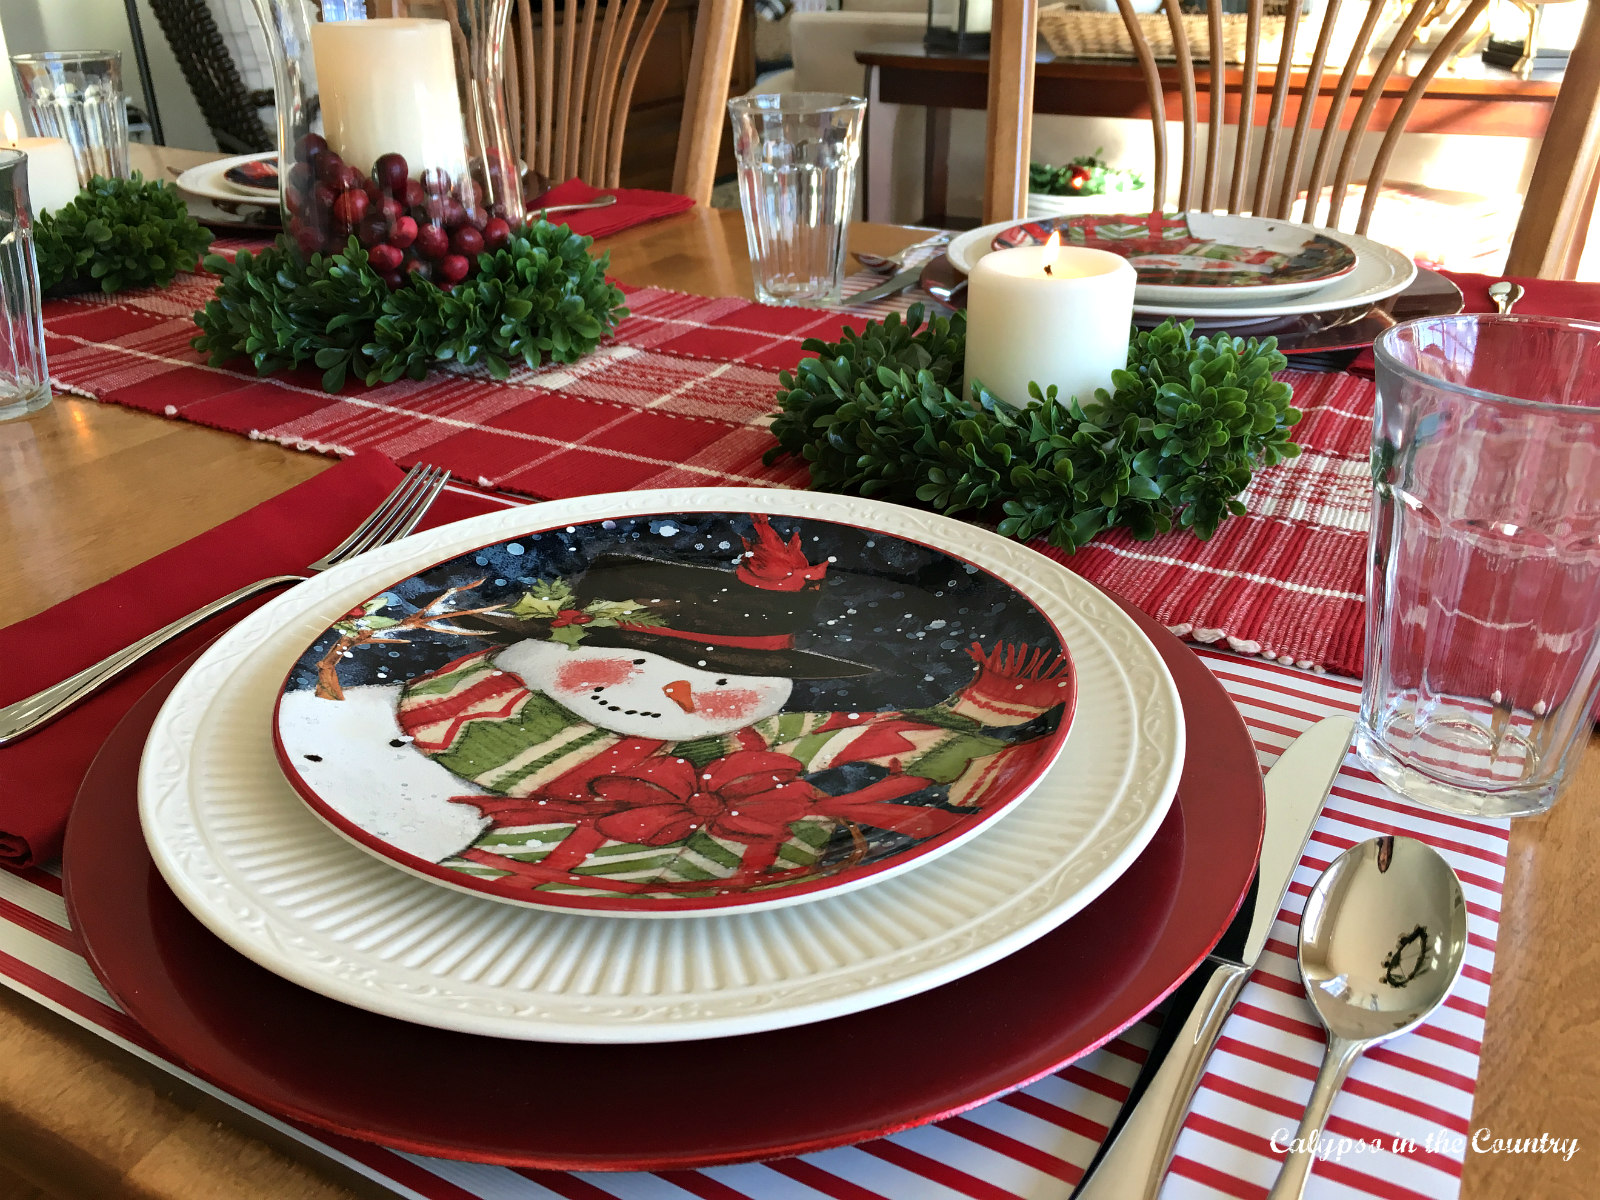 Using Wrapping Paper for a Place Setting